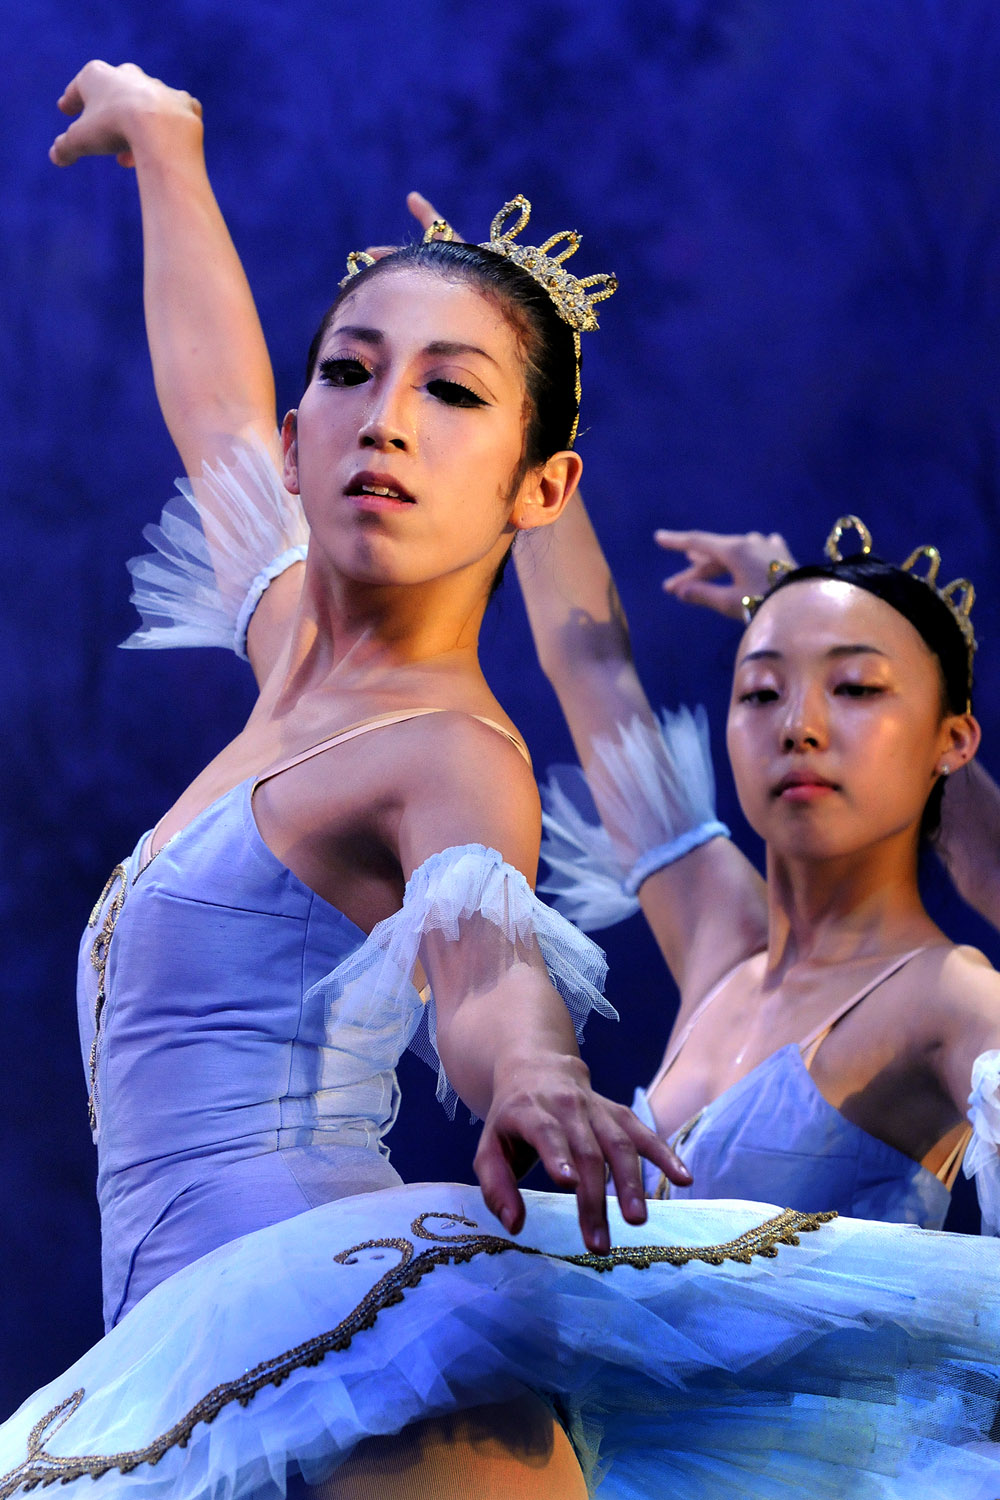 'Don Quixote' by the Mitsuko Inao Ballet School